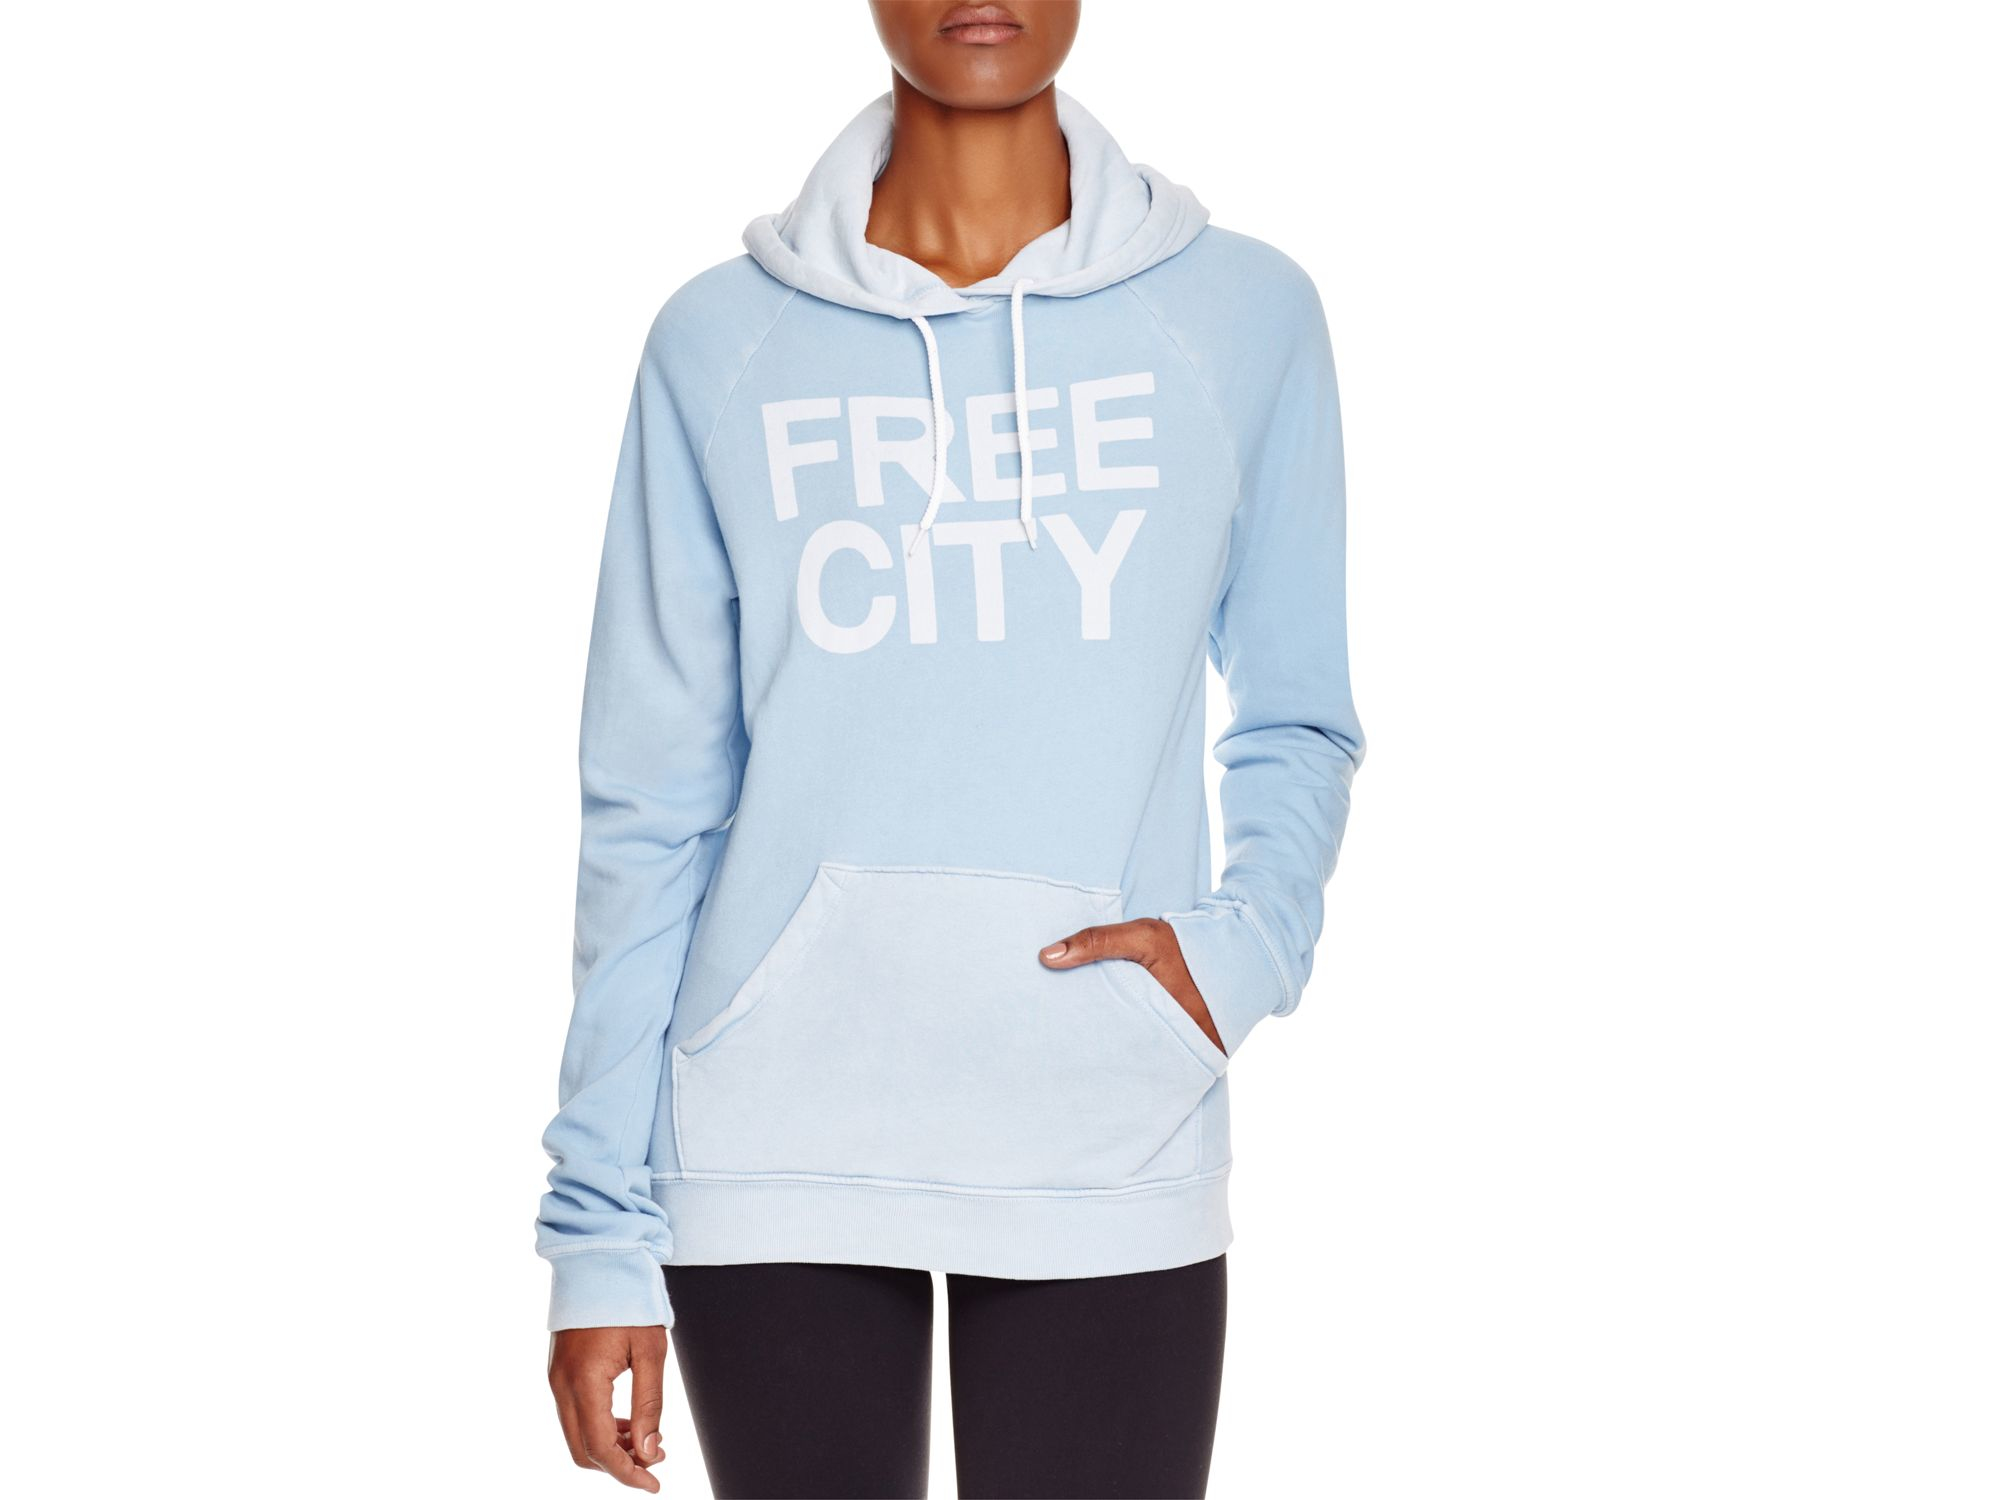 82256004d6ca99 Lyst - FREE CITY Basic Goodness Hoodie Sweatshirt in Blue